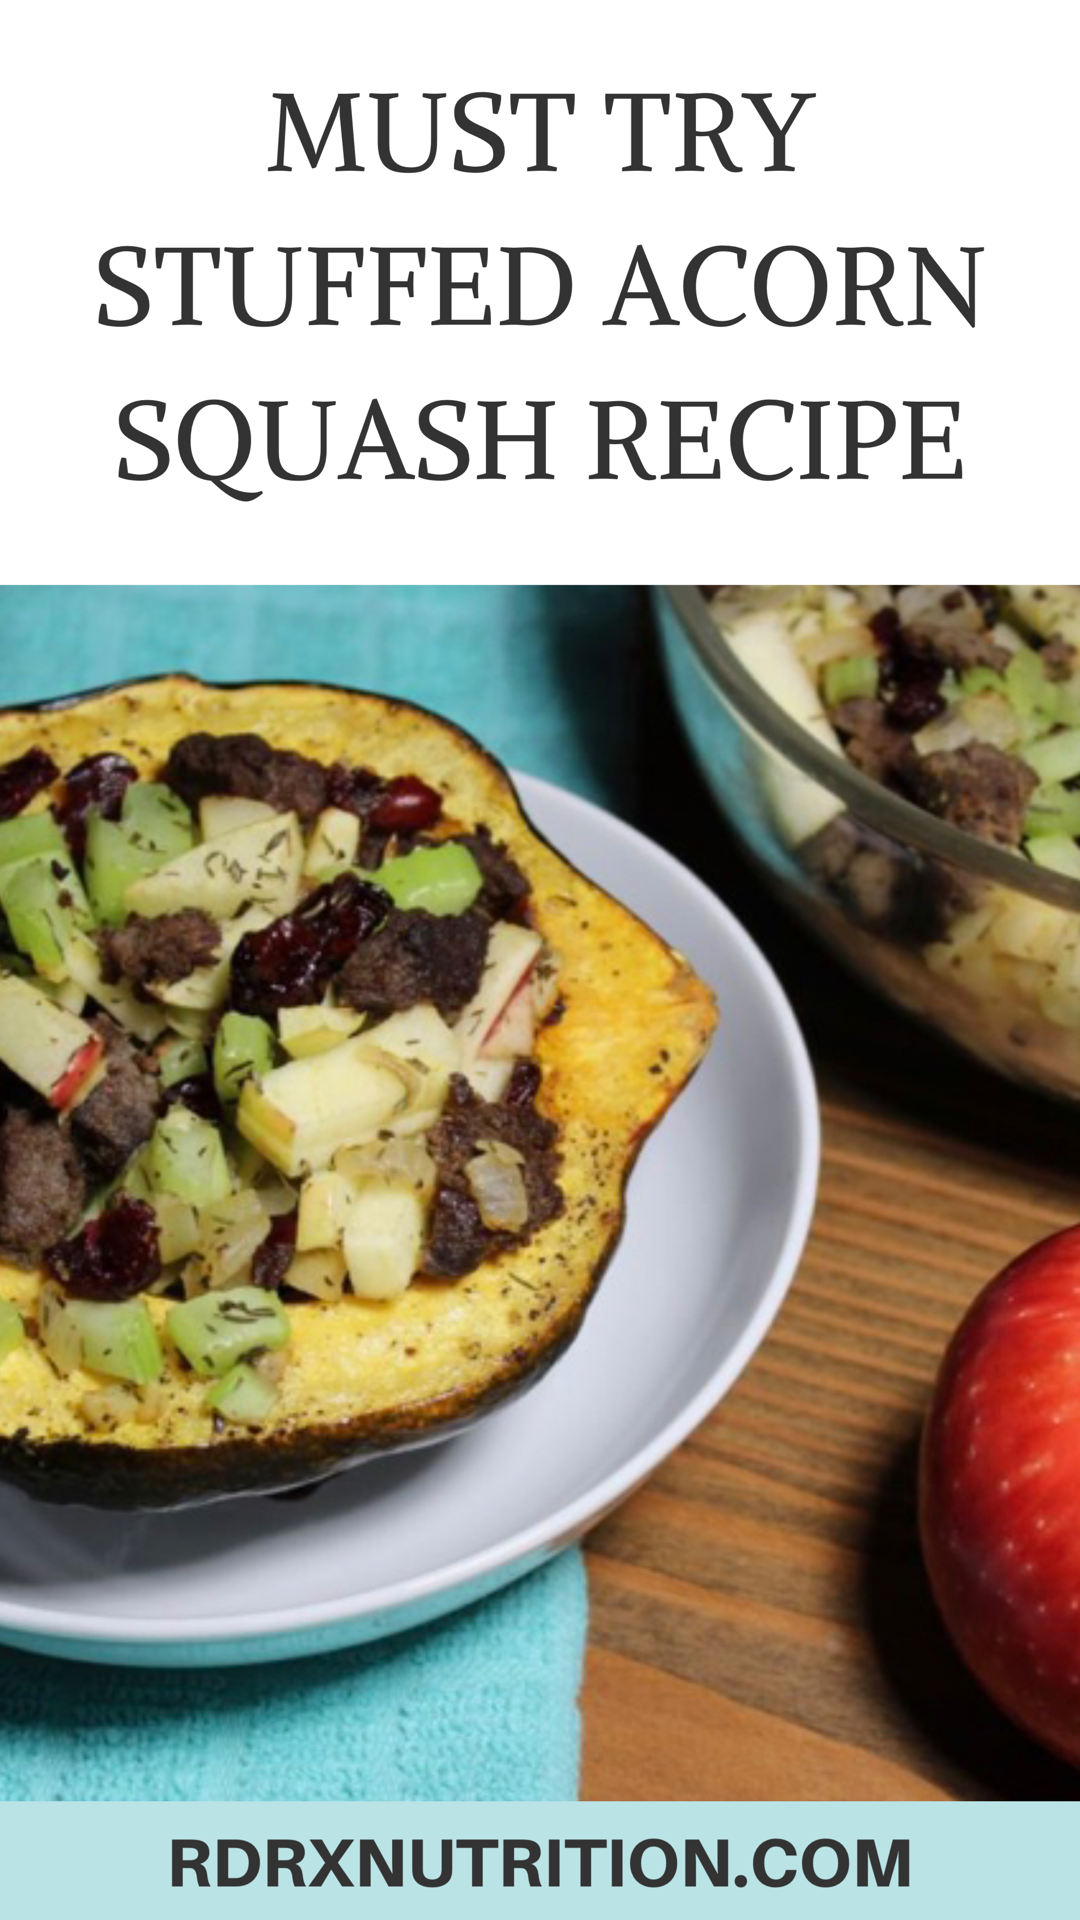 Healthy Stuffed Acorn Squash With Images Nutrition Recipes